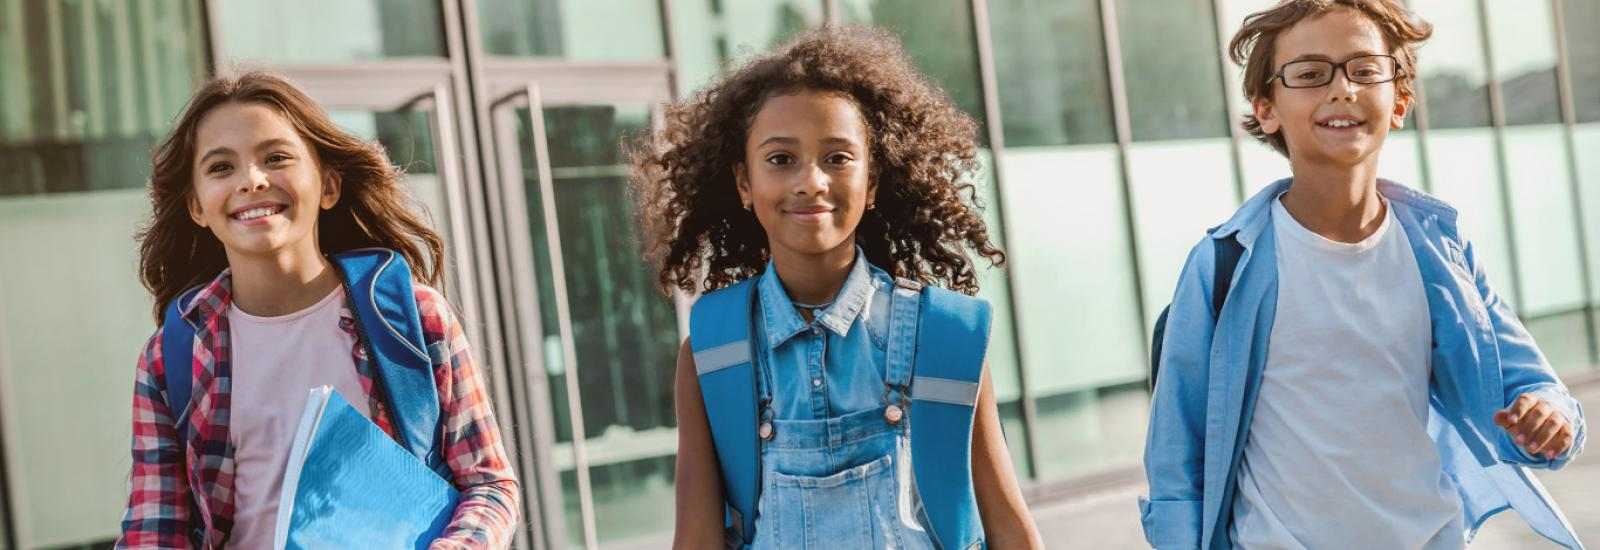 <p>Children are our future, education is theirs!</p>